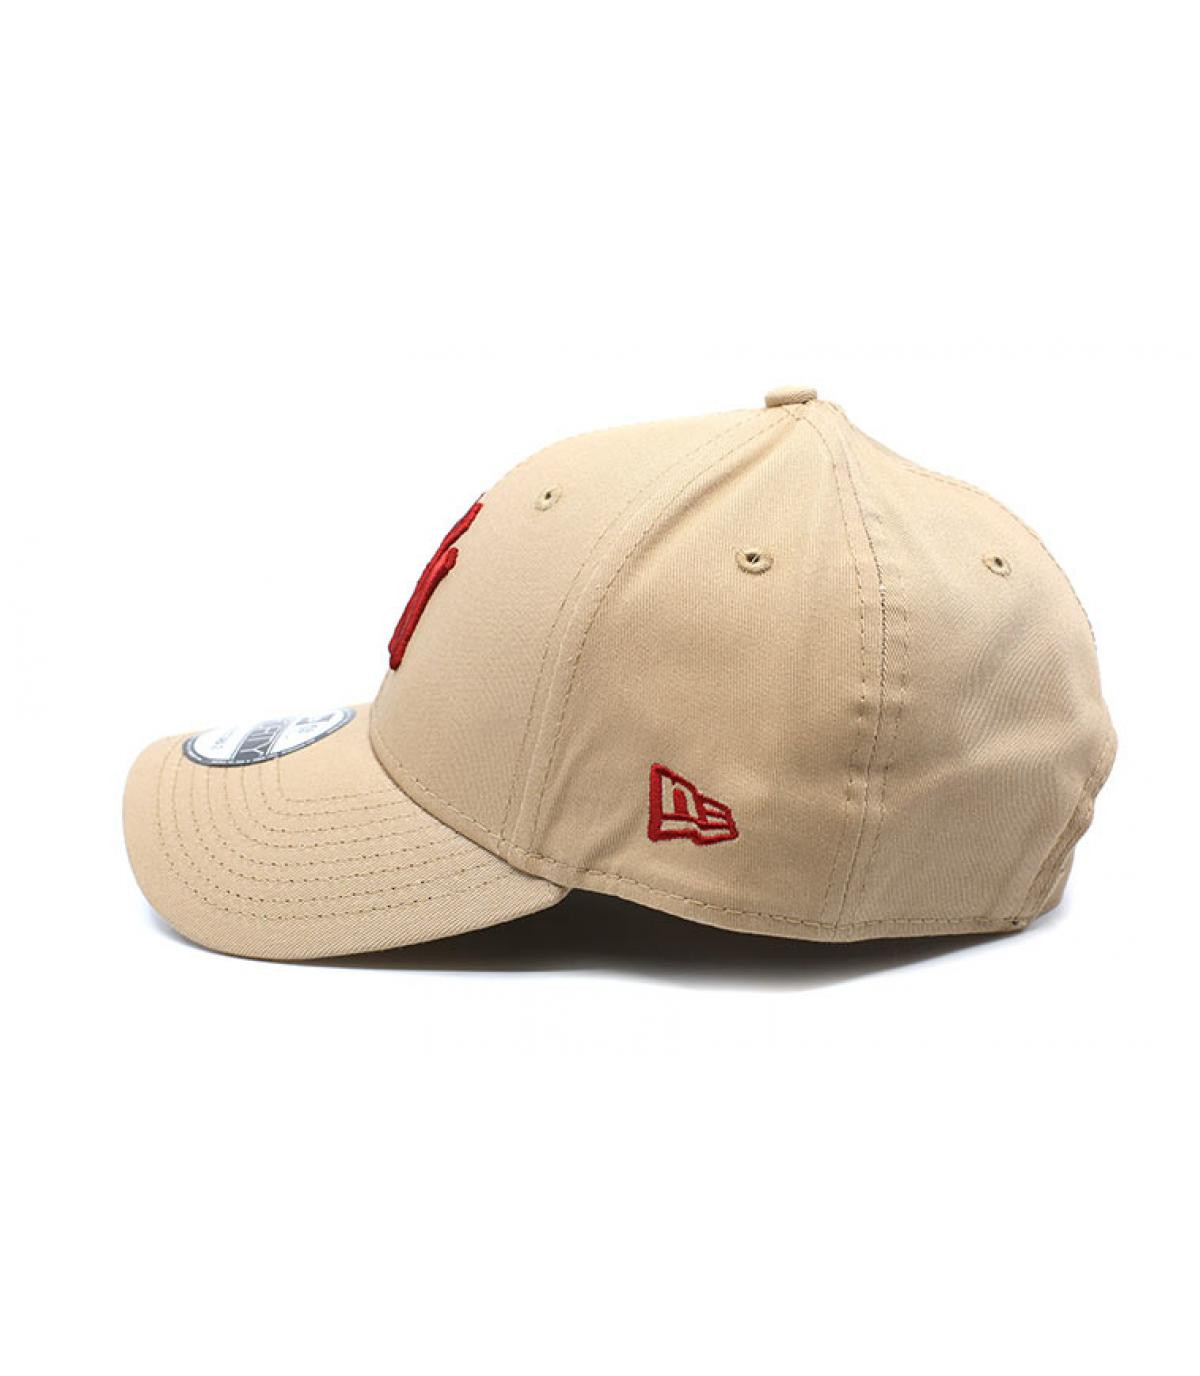 Détails Kids League Ess NY 9Forty camel hot red - image 4